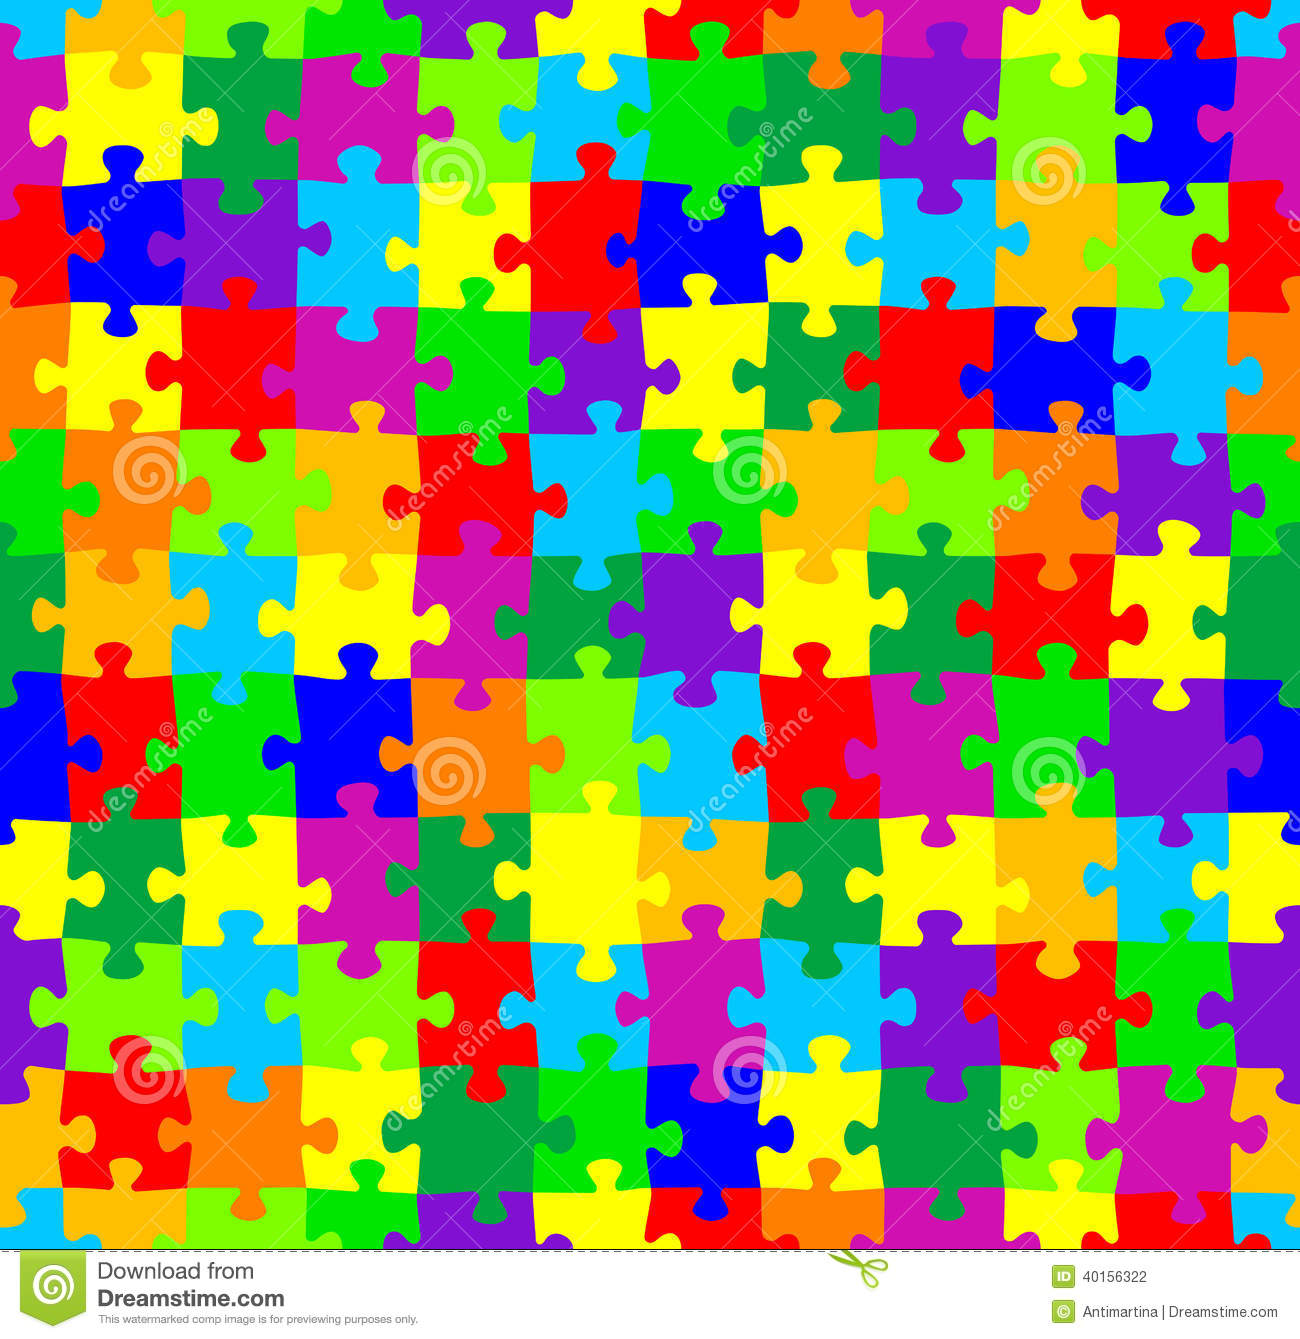 Seamless Jigsaw Puzzle Pattern Stock Vector - Image: 40156322: dreamstime.com/stock-photography-seamless-jigsaw-puzzle-pattern...